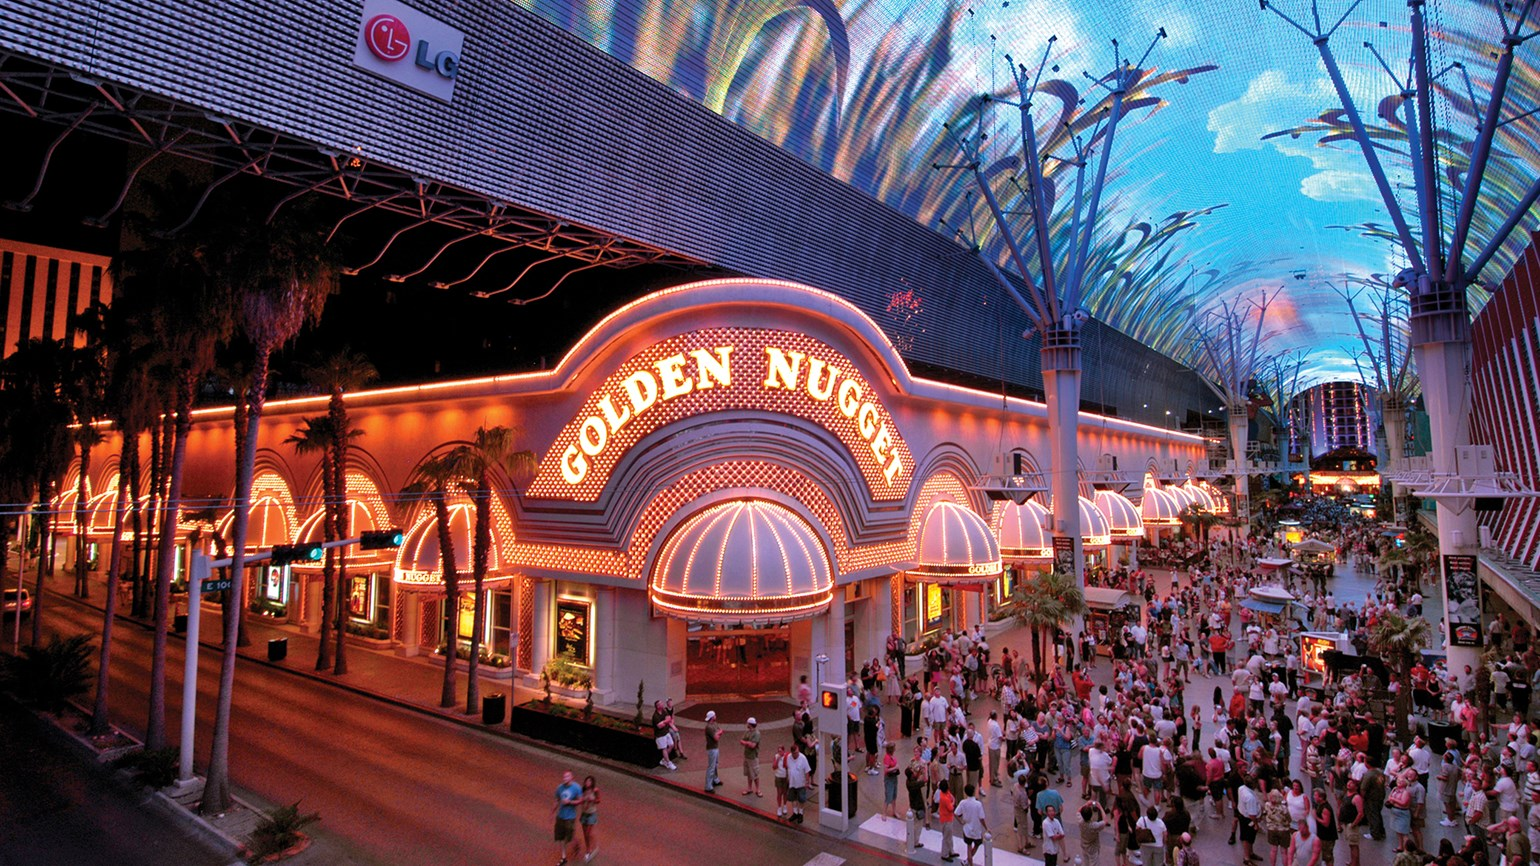 Las Vegas' Viva Vision canopy getting a $32M upgrade